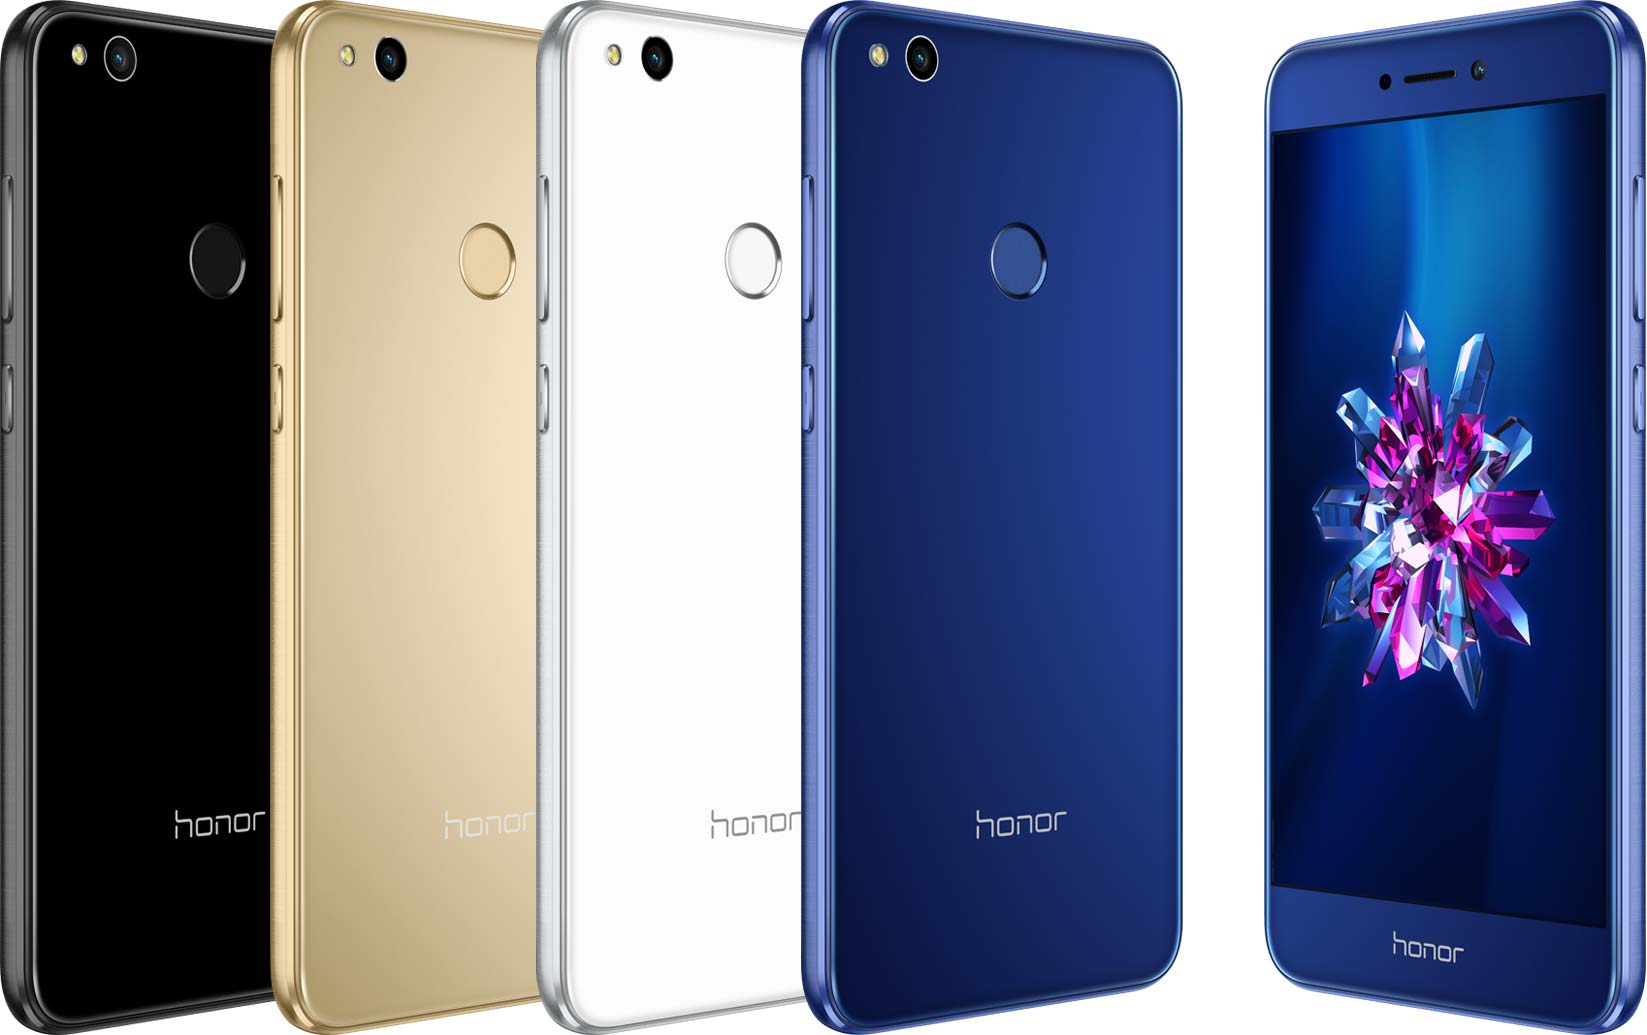 Huawei launches Honor View10 and Honor 7X in the United States